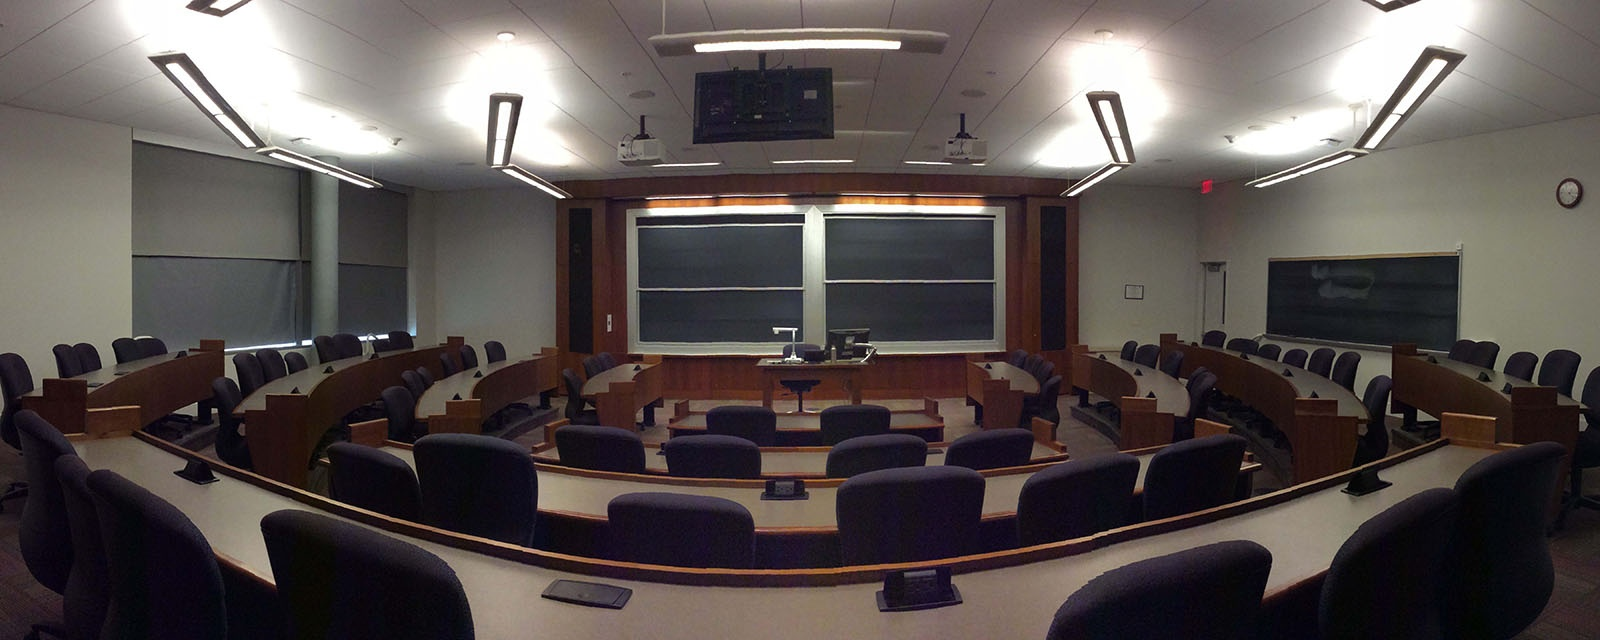 Panorama SOM 203 from back of room, stadium seating, moveable chairs, teaching station in front center